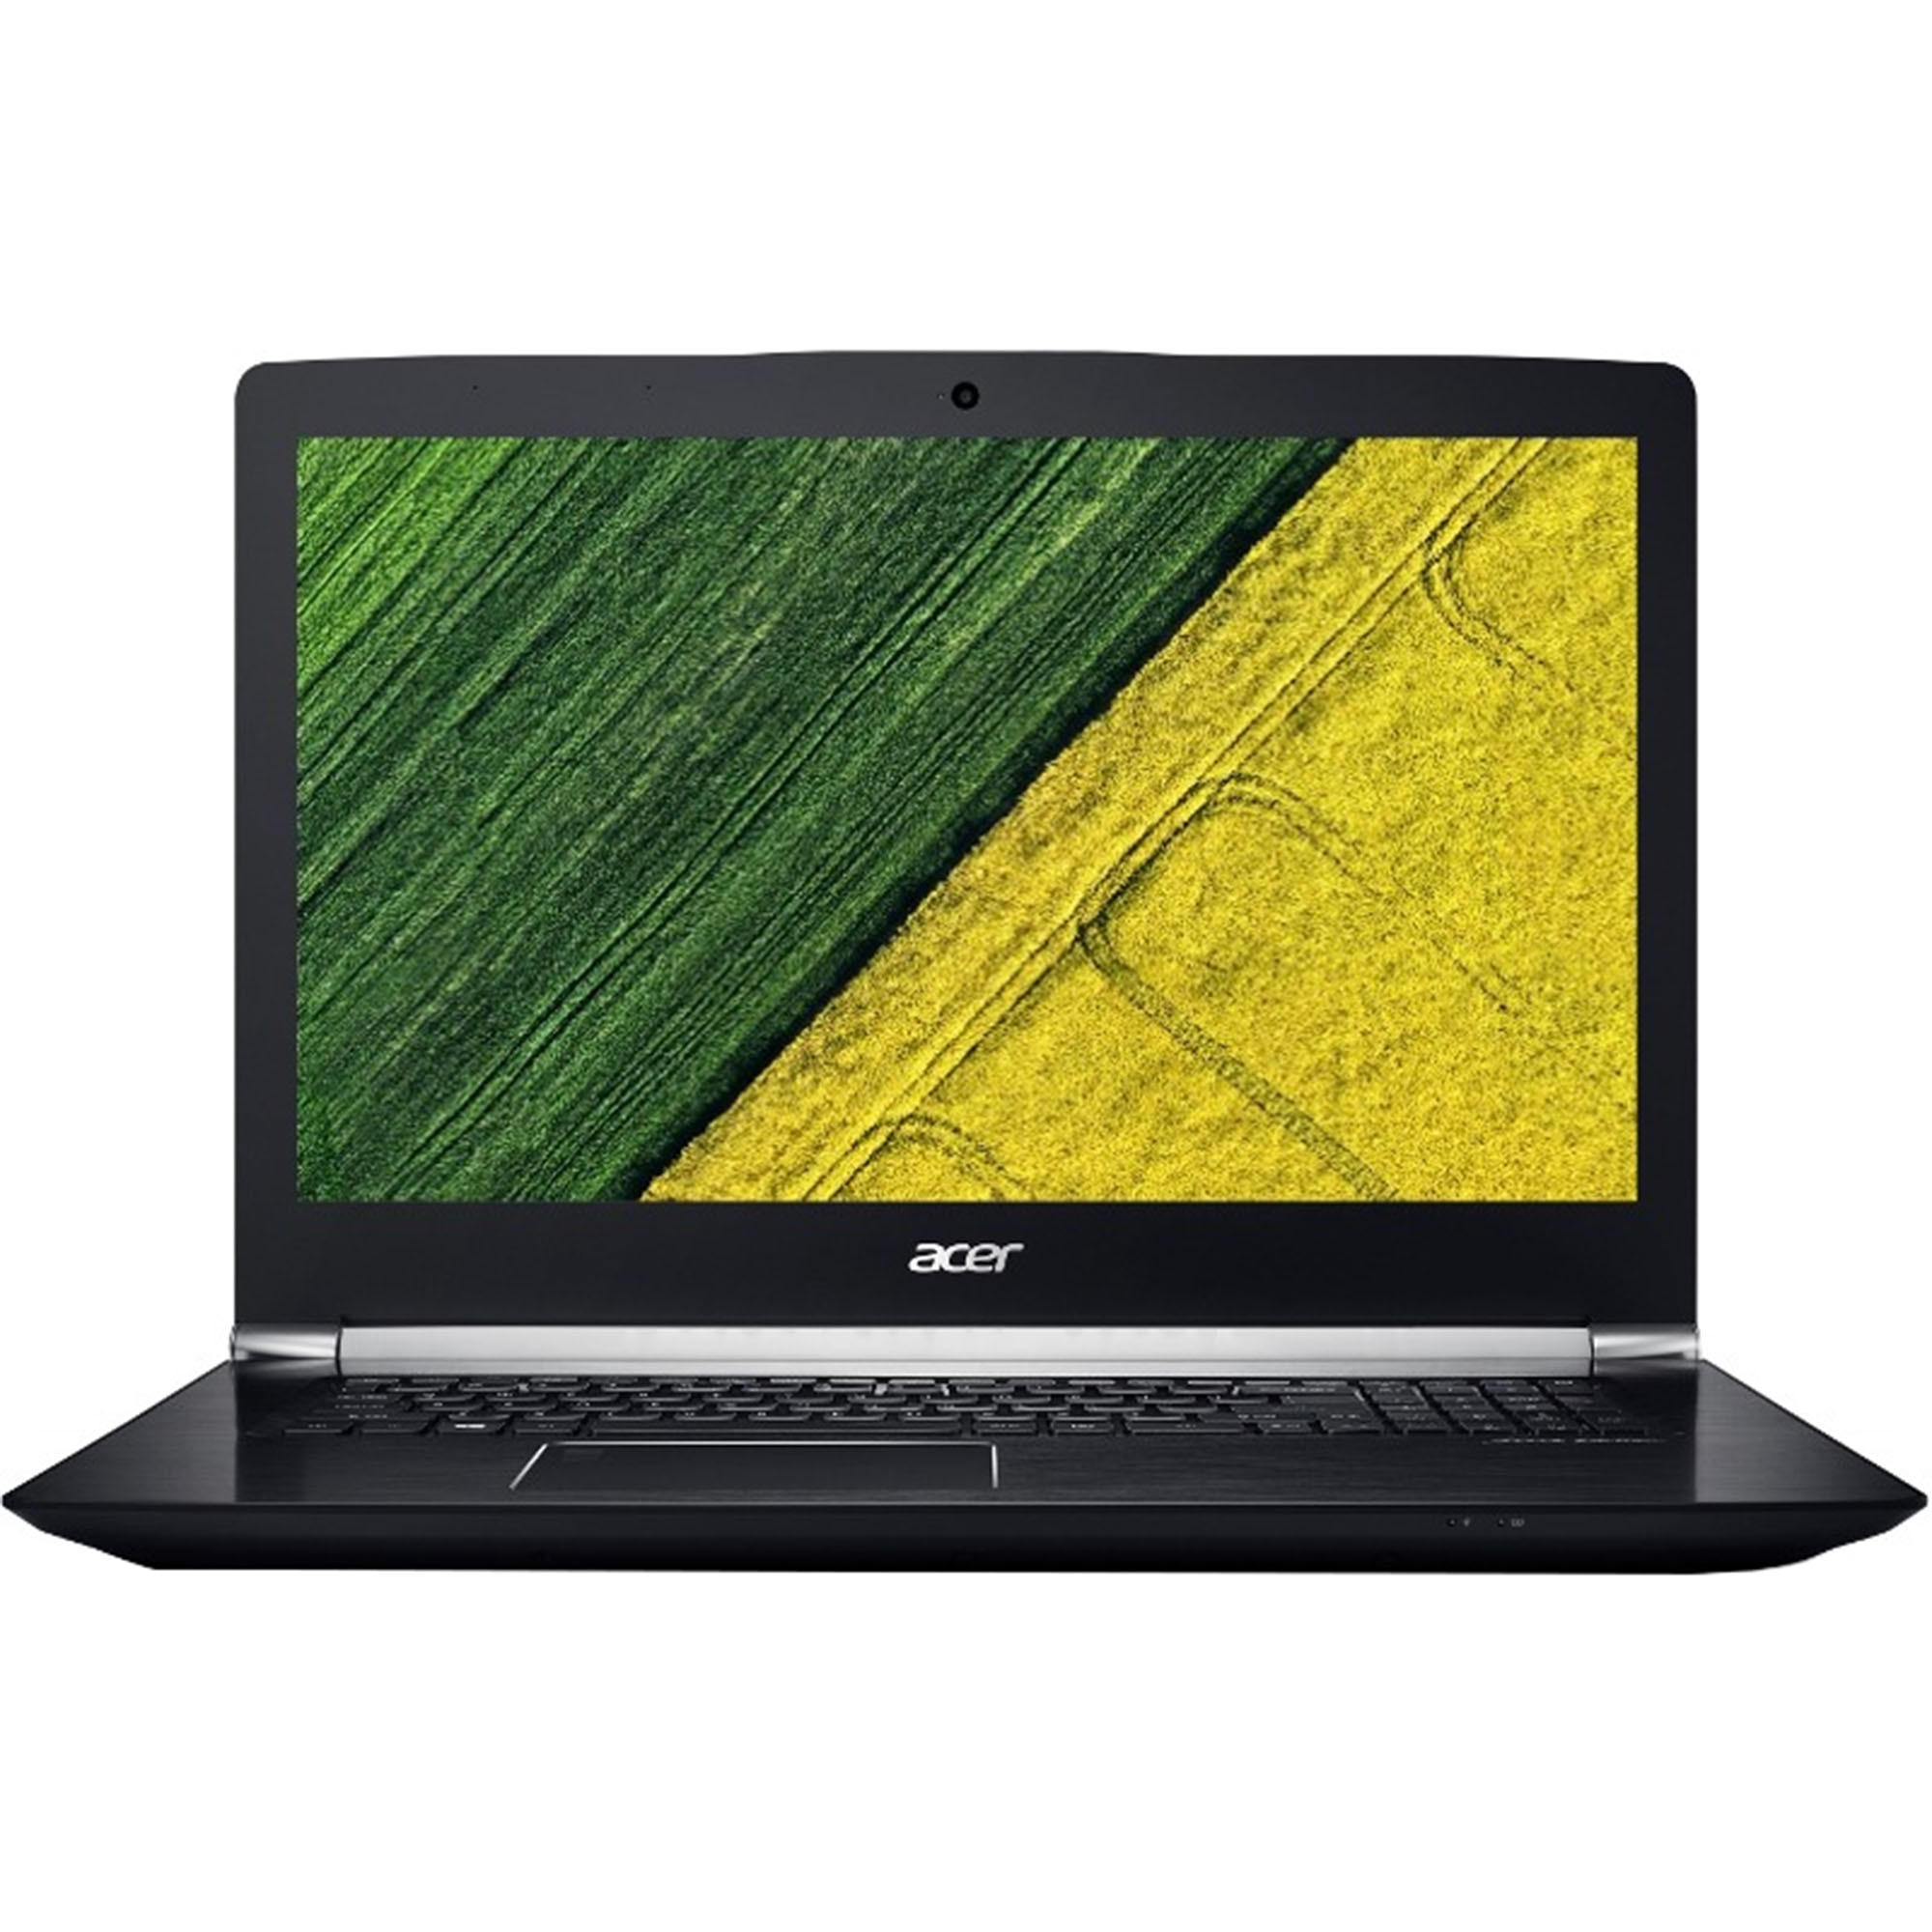 "Fotografie Laptop Acer Gaming Aspire V Nitro VN7-593G-75FP cu procesor Intel® Core™ i7-7700HQ 2.80 GHz, Kaby Lake, 15.6"", Full HD, 8GB, 256GB SSD, nVidia GeForce GTX 1060 6GB, Linux, Black"